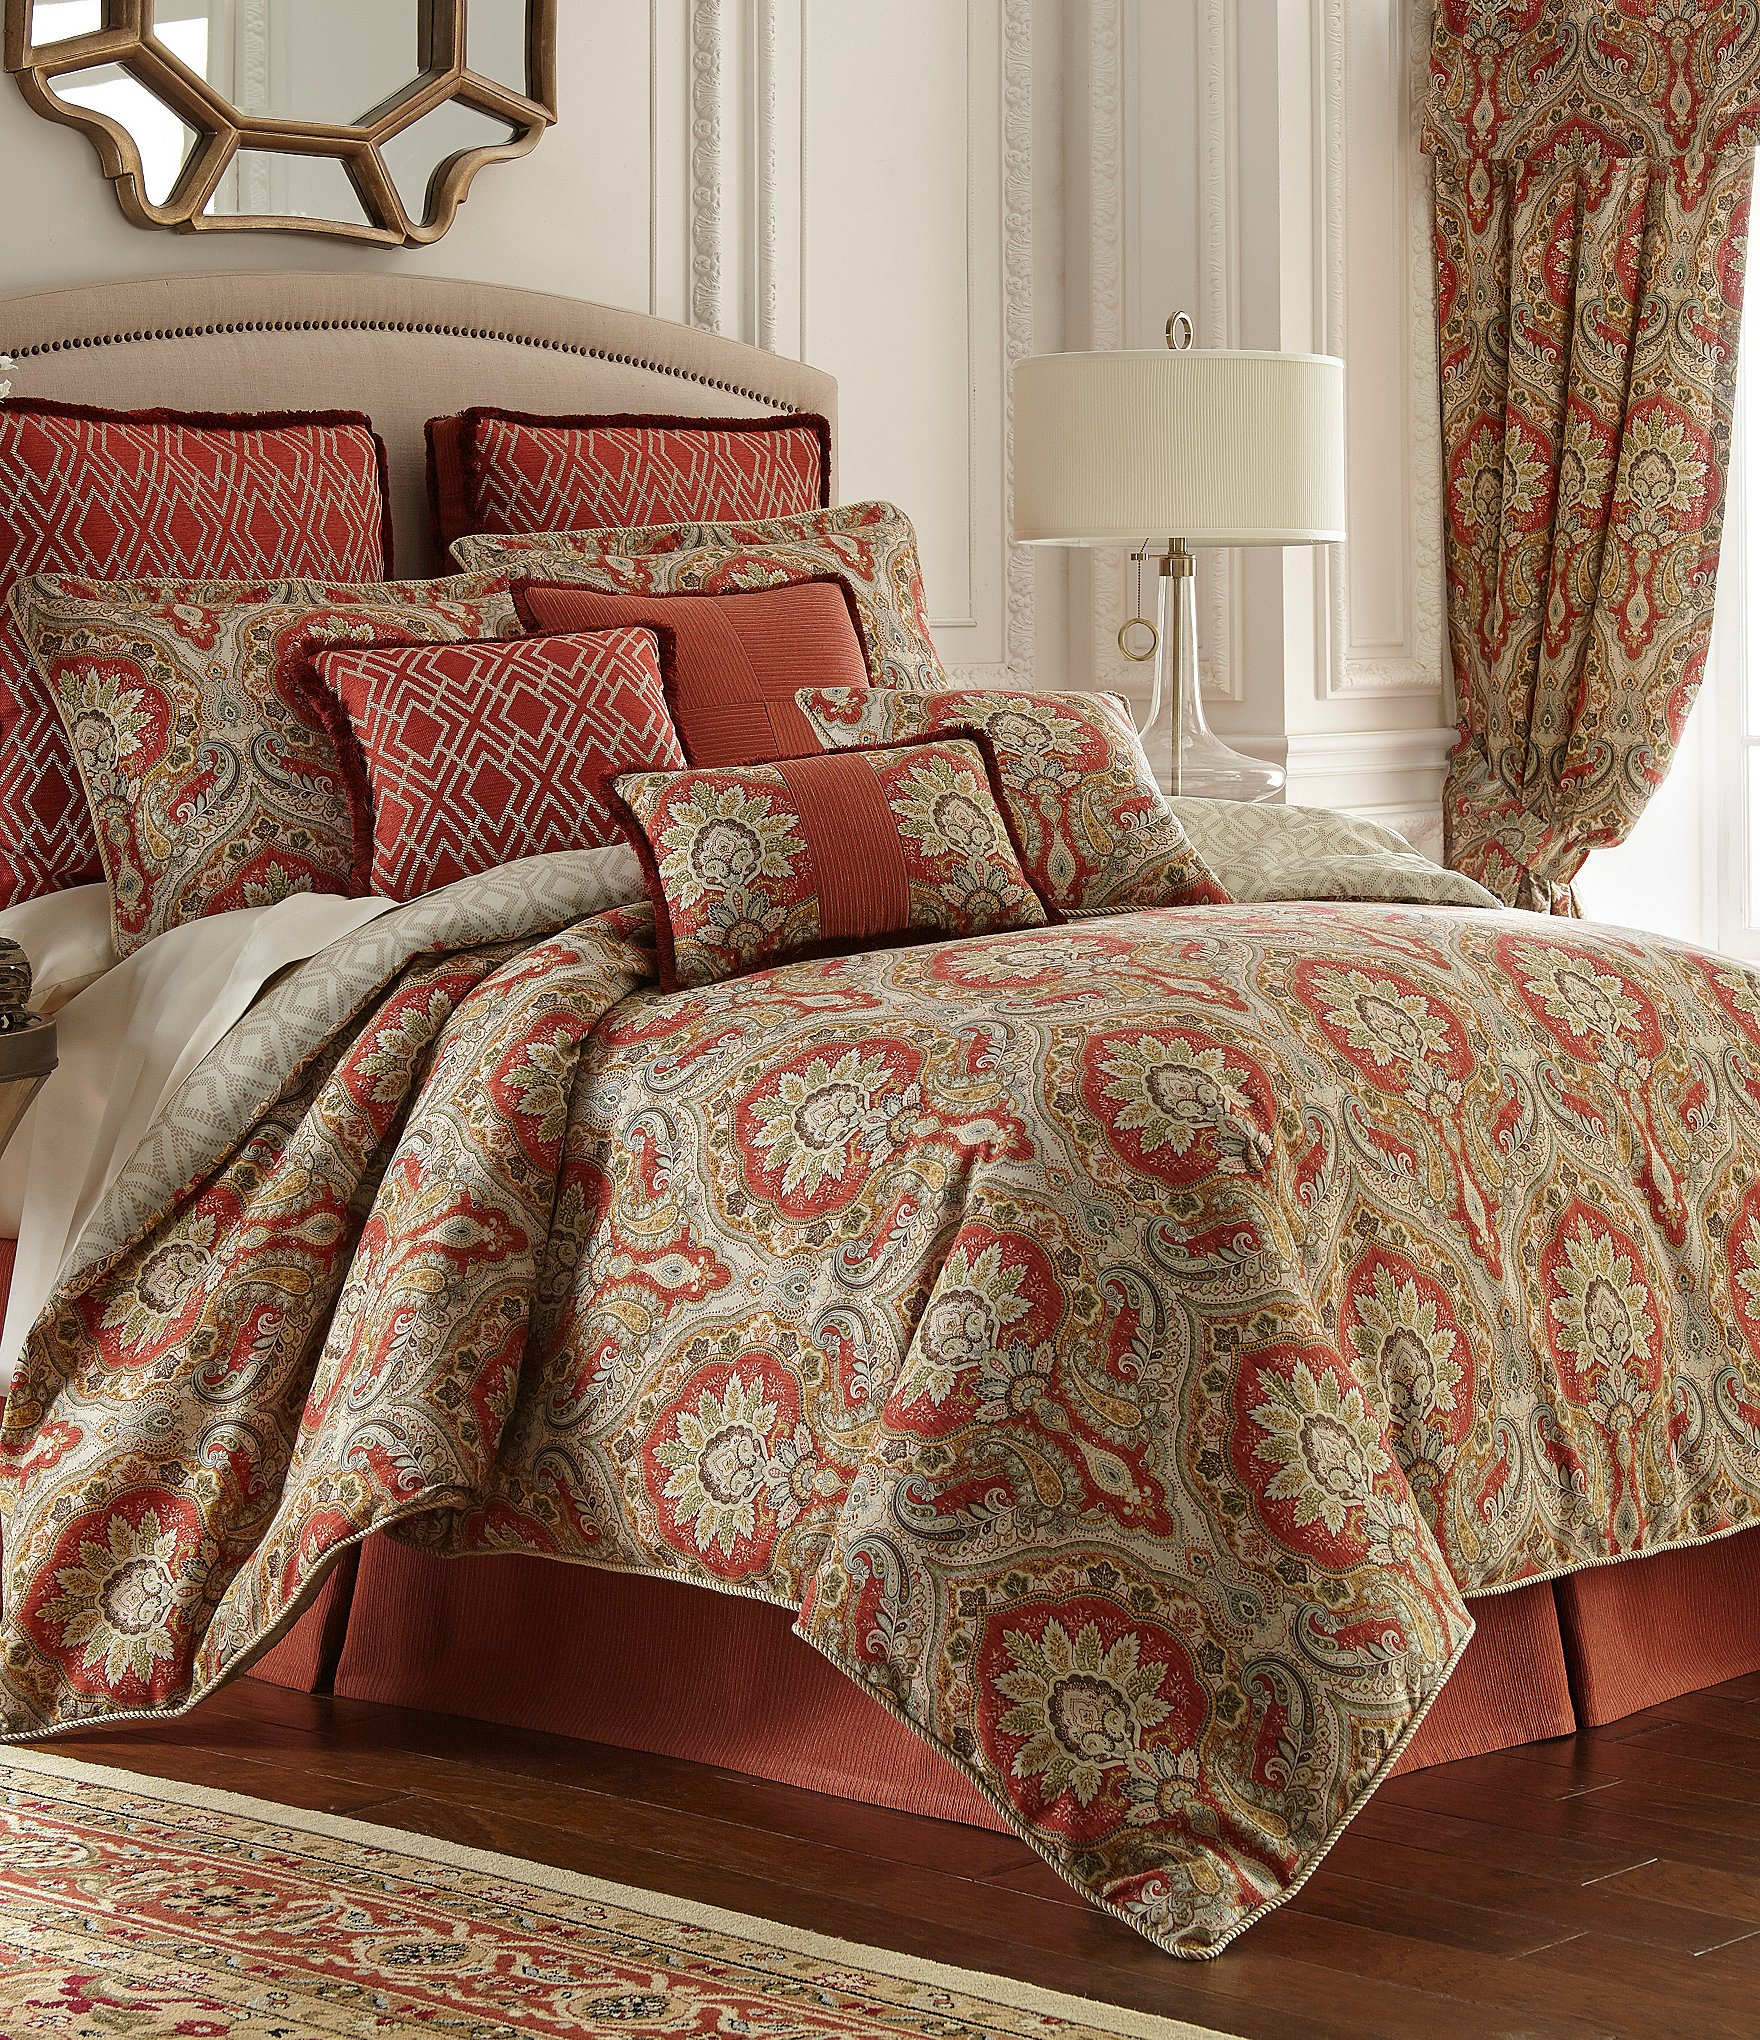 Rose Tree Harrogate Paisley Damask Amp Geometric Diamond